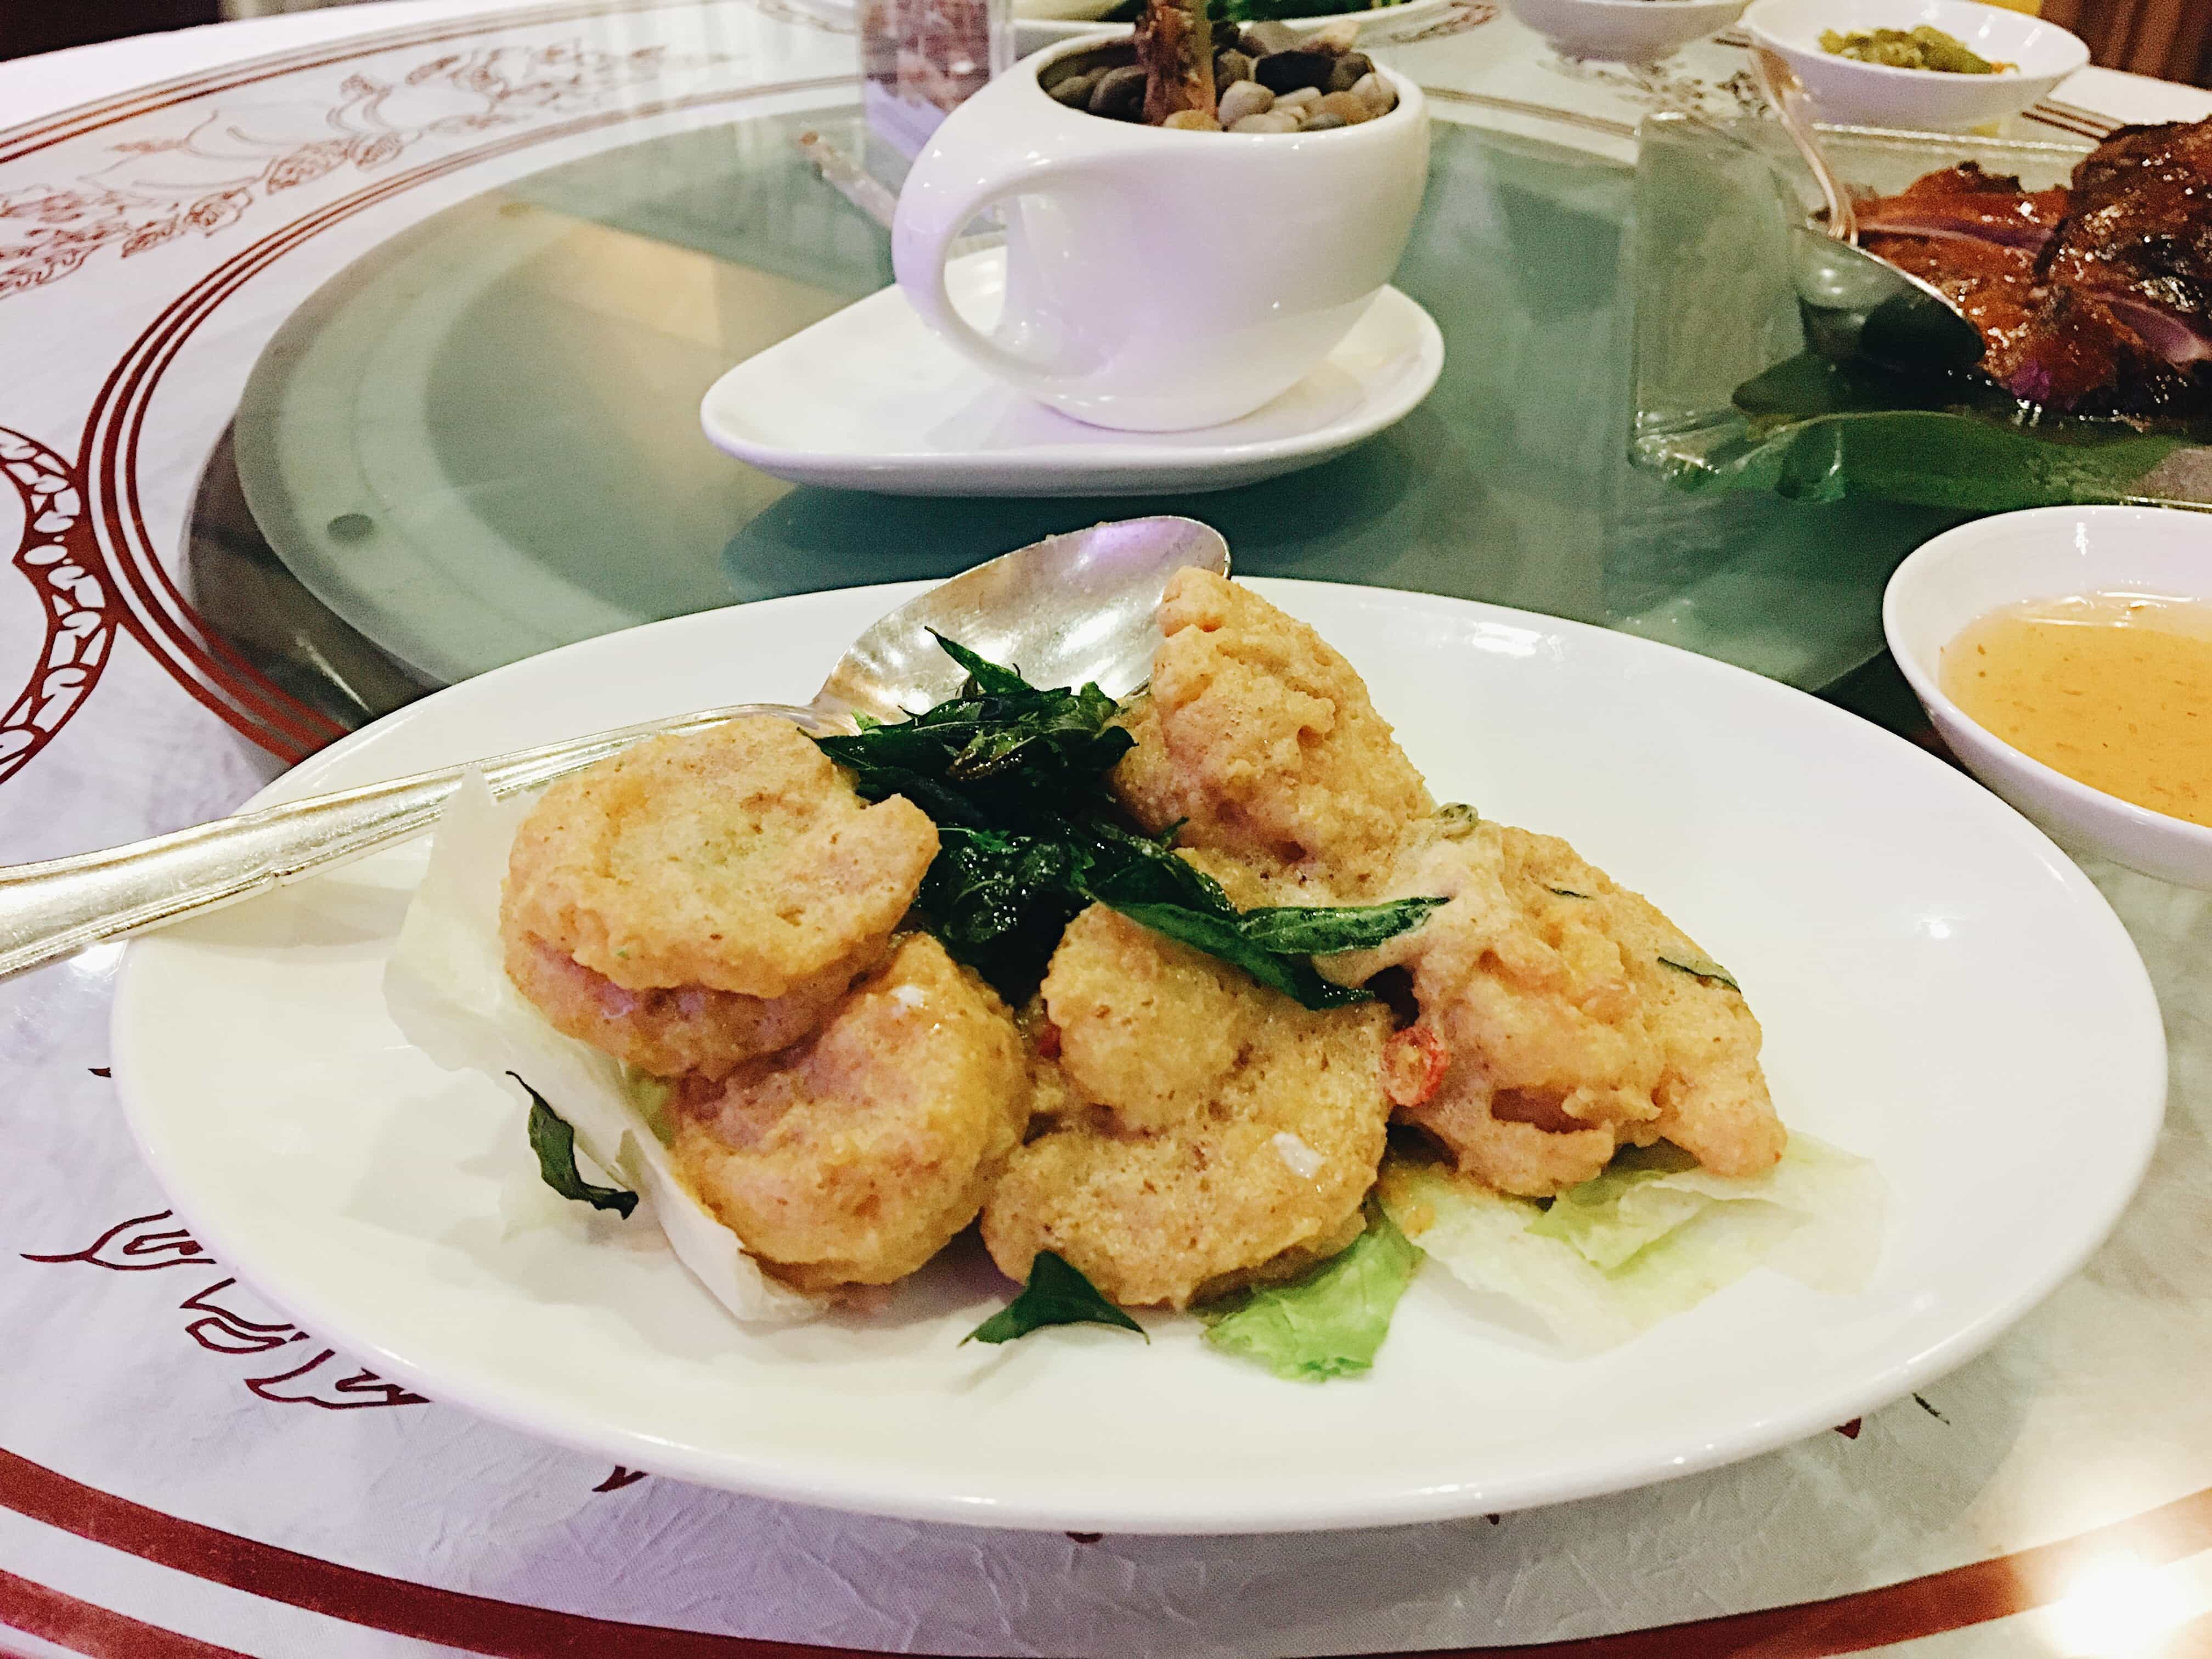 Hong Kong Style Stir Fried Prawns in our Kuala Lumpur experience